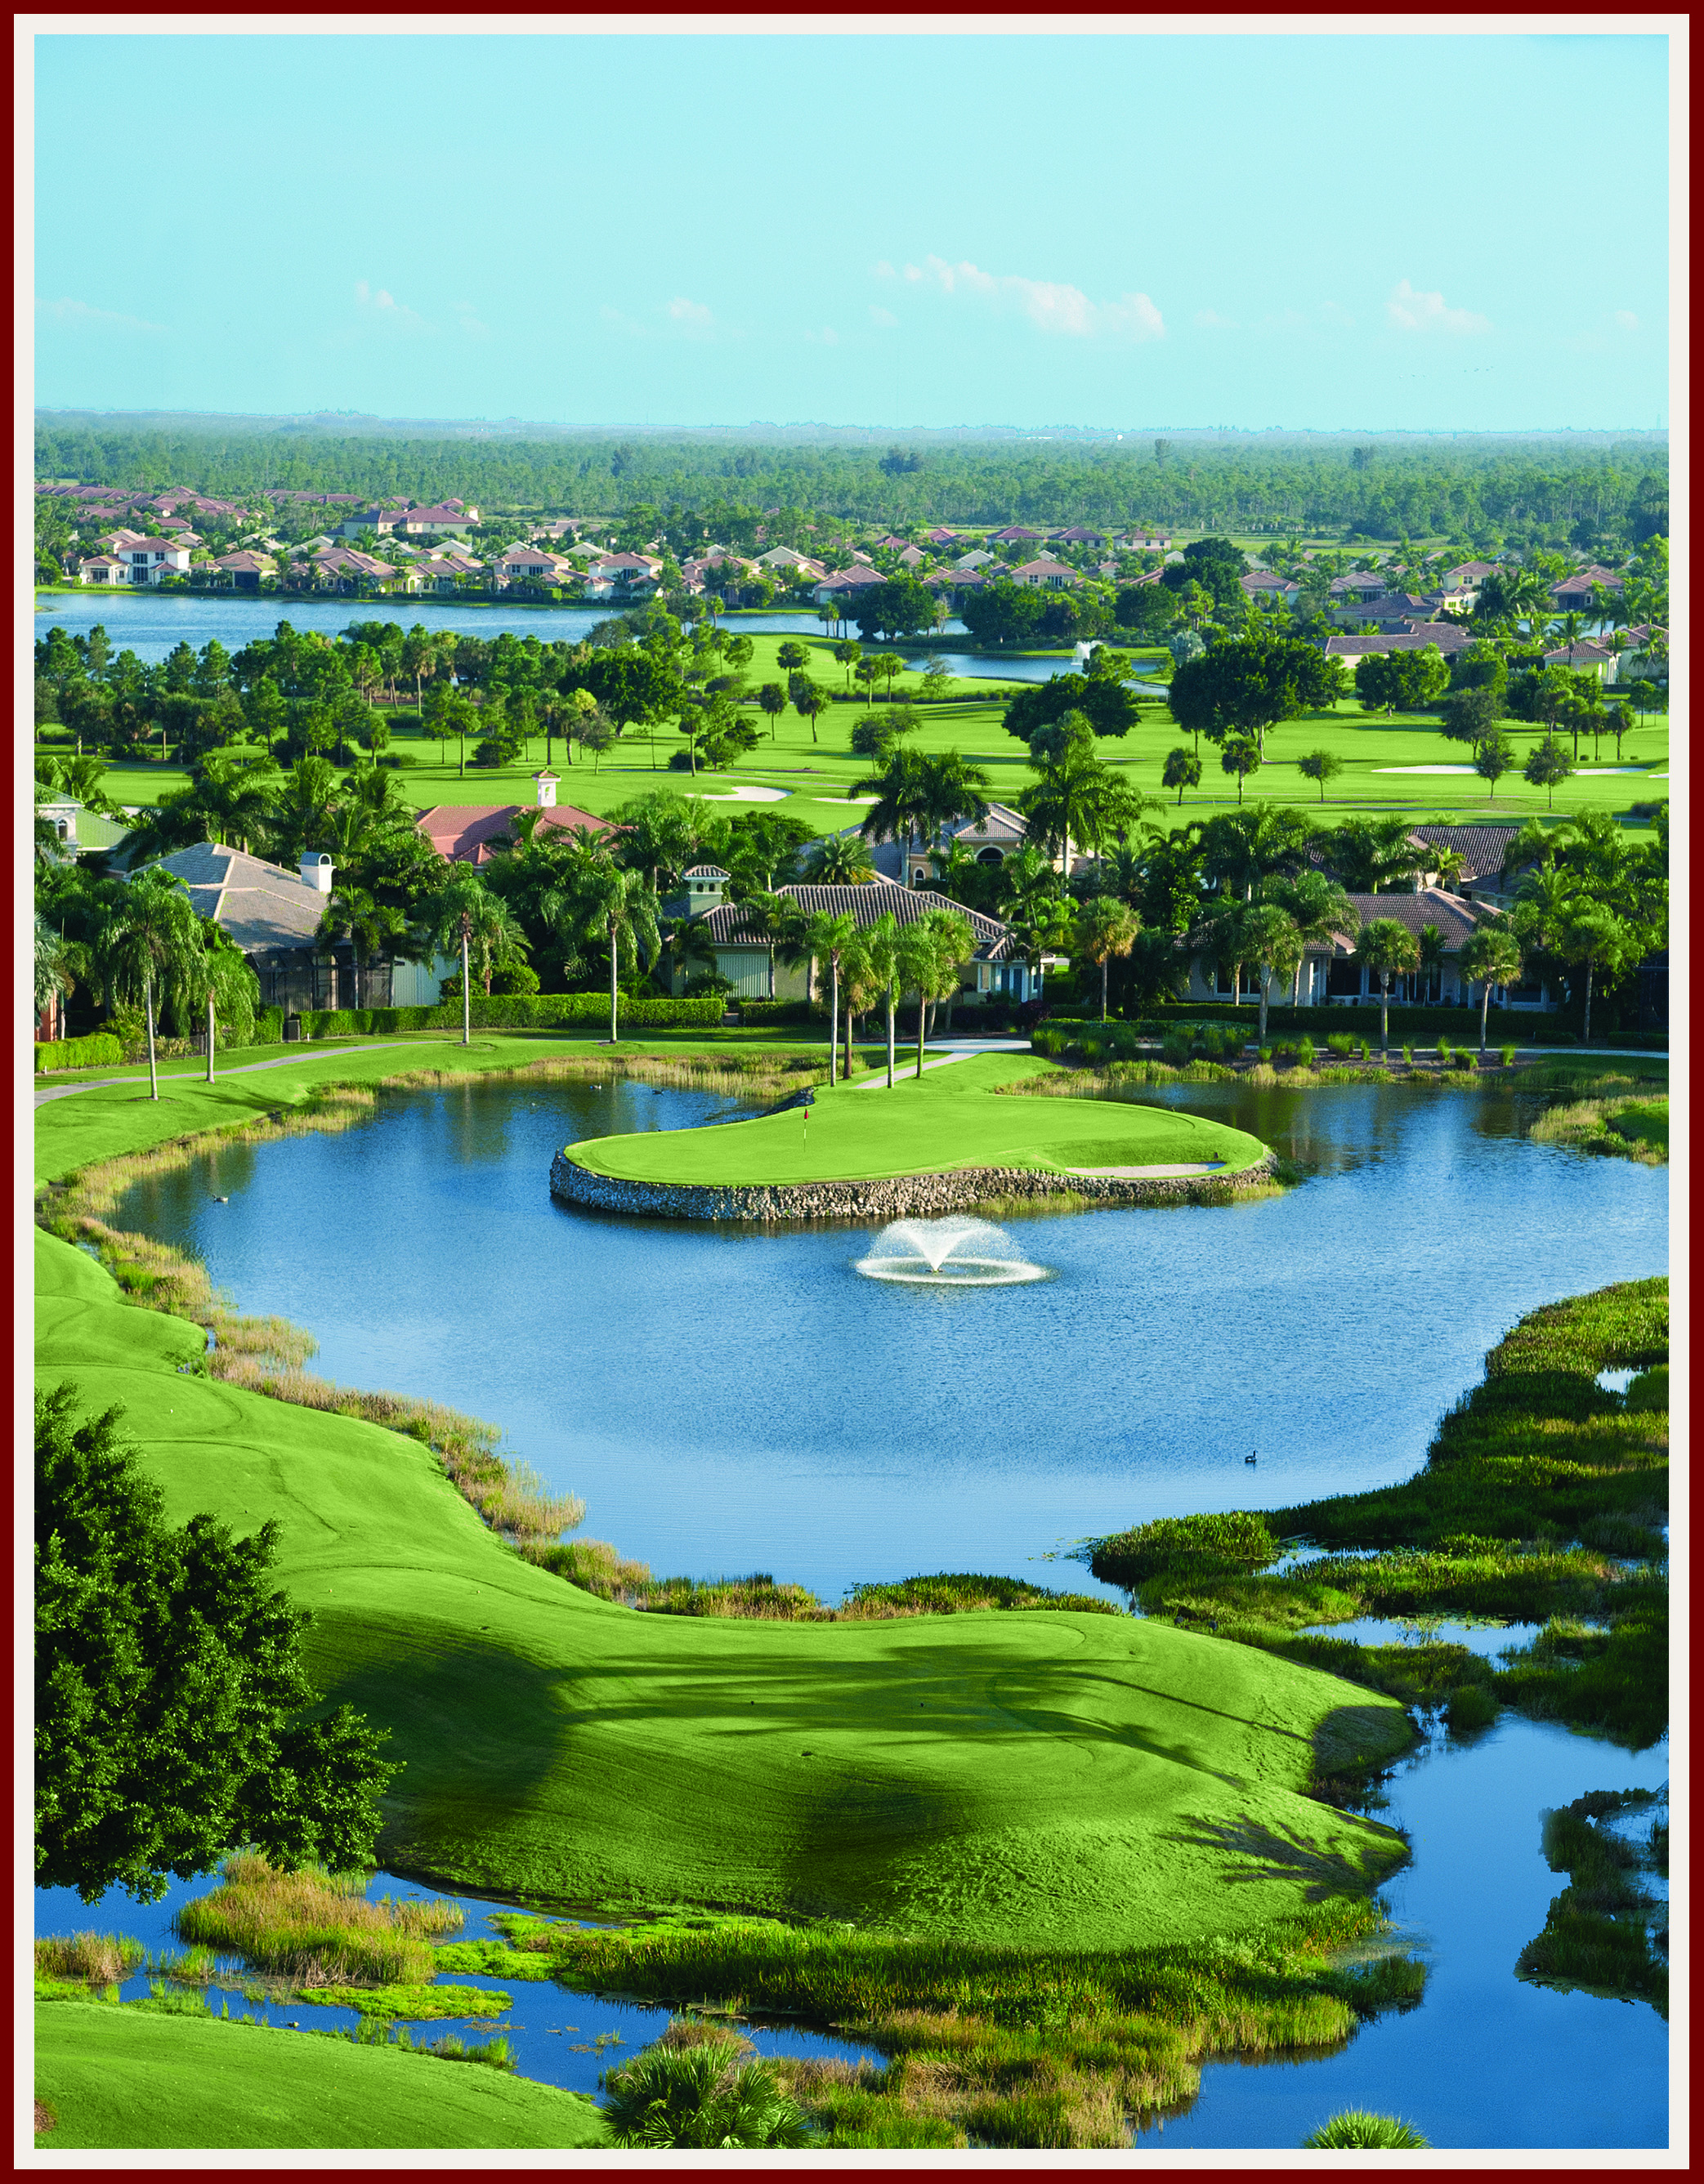 Ibis Golf and Country Club Home For Sale - Luxurious resort style amenities await in the beautiful golf course community of Ibis in West Palm Beach FL!